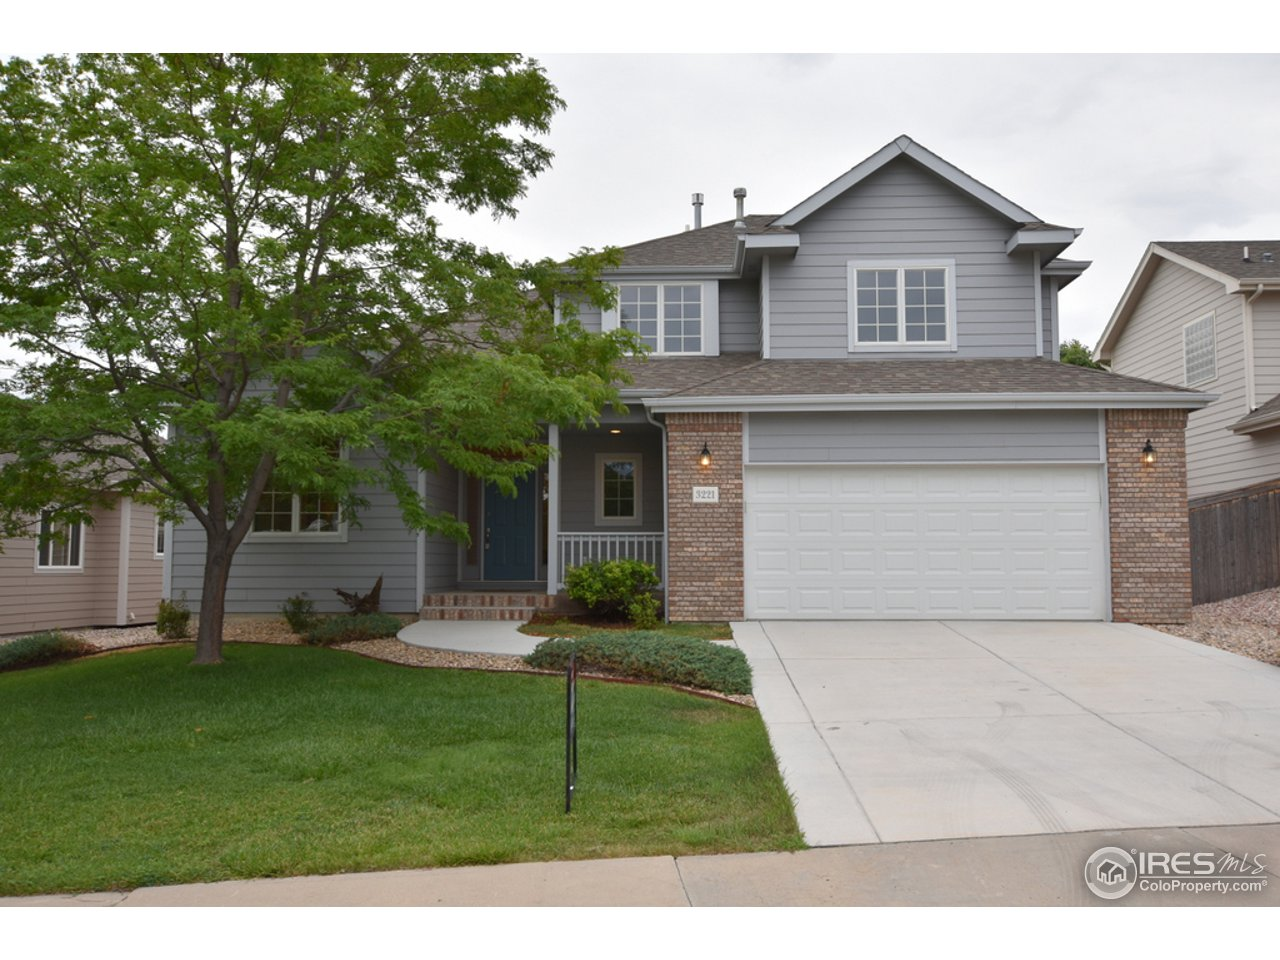 3221 Reedgrass Ct, Fort Collins, CO 80521